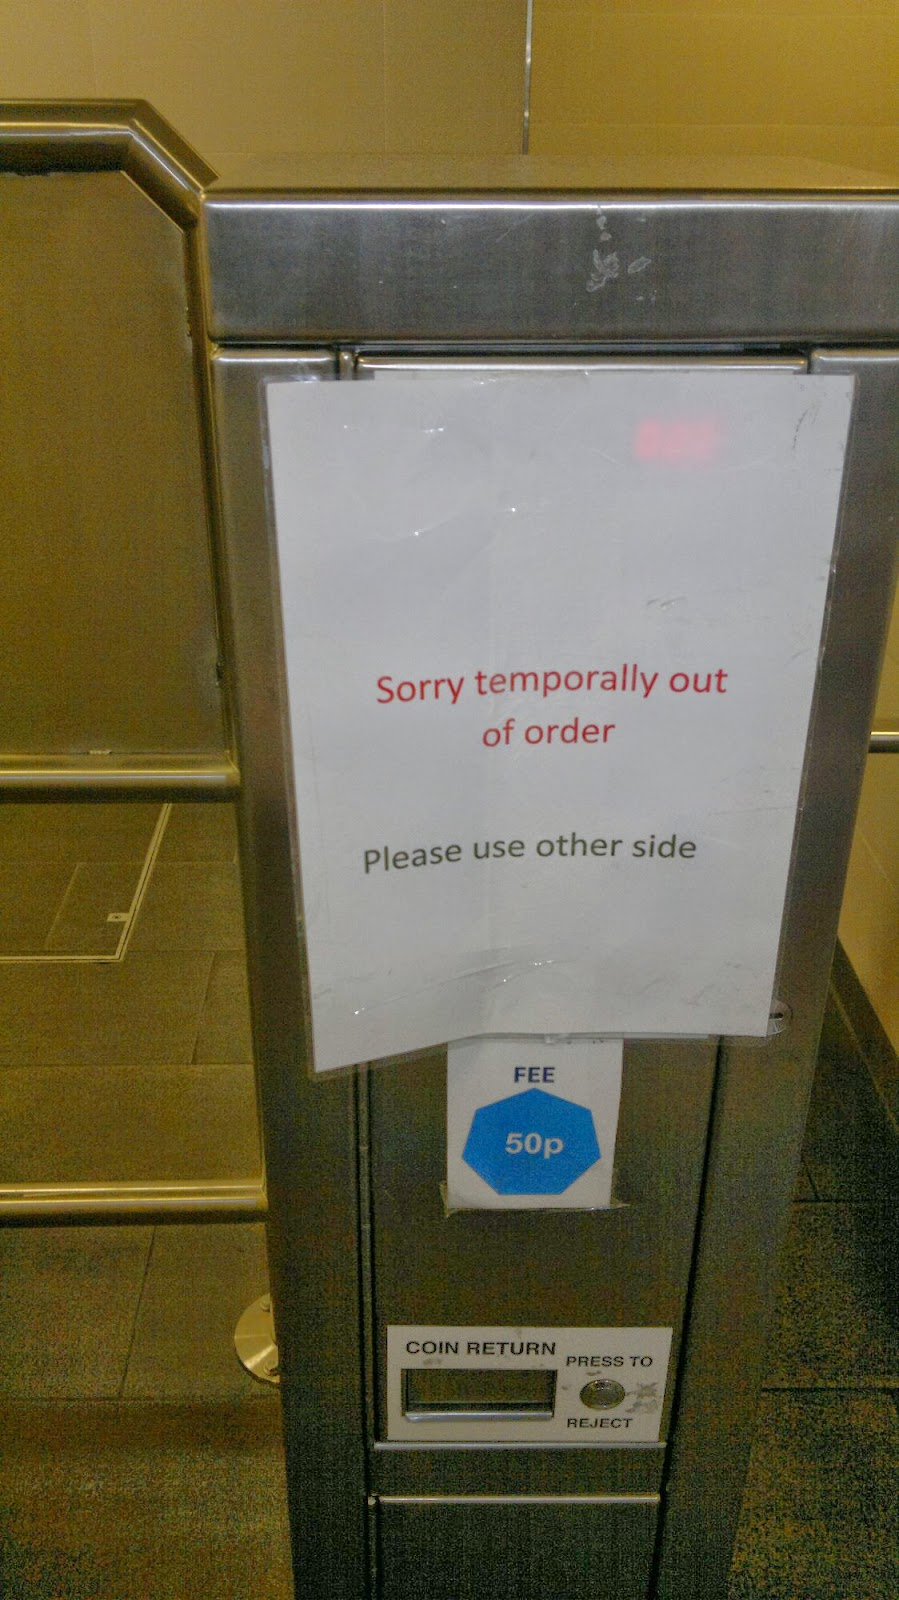 Sorry temporally out of order